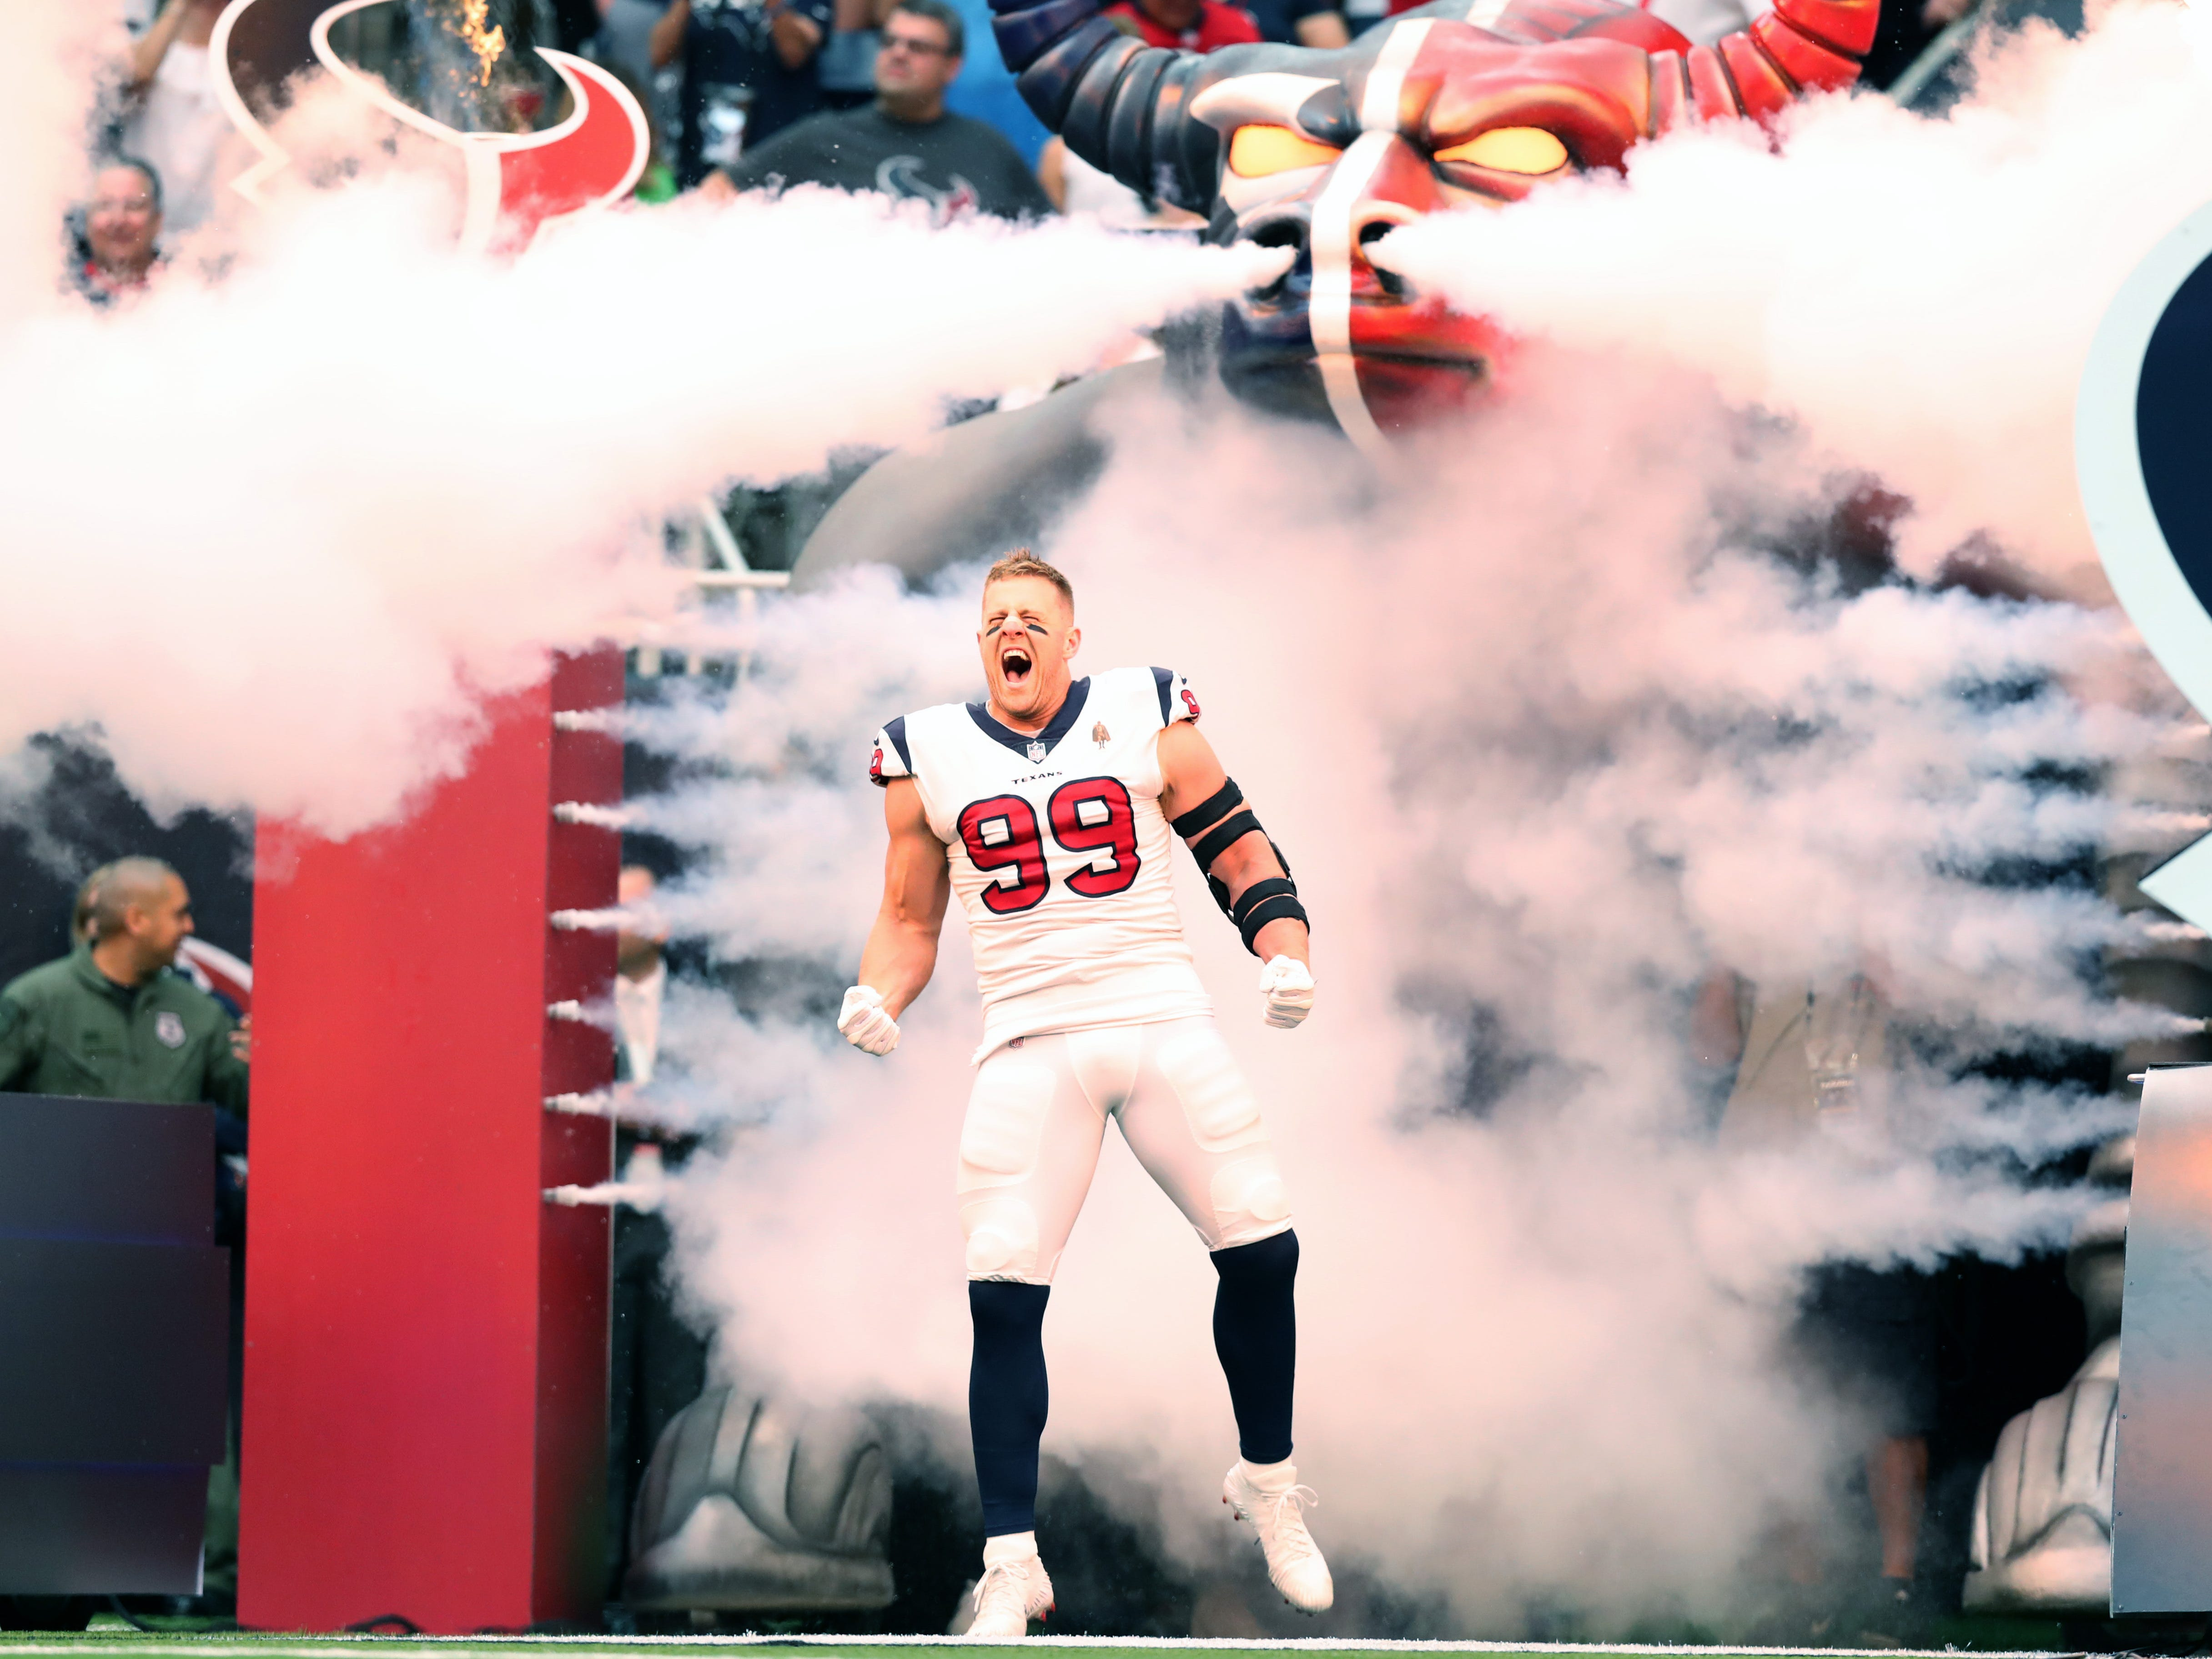 Houston Texans defensive end J.J. Watt screams as he is introduced prior to the kick-off against the New York Giants at NRG Stadium.